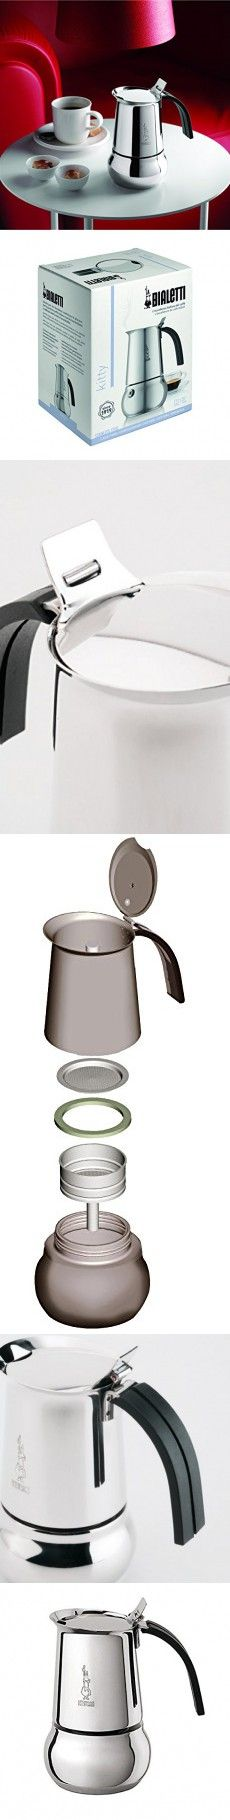 Bialetti 06812 Kitty Coffee Maker, Stainless Steel, 4-Cup(8 oz)